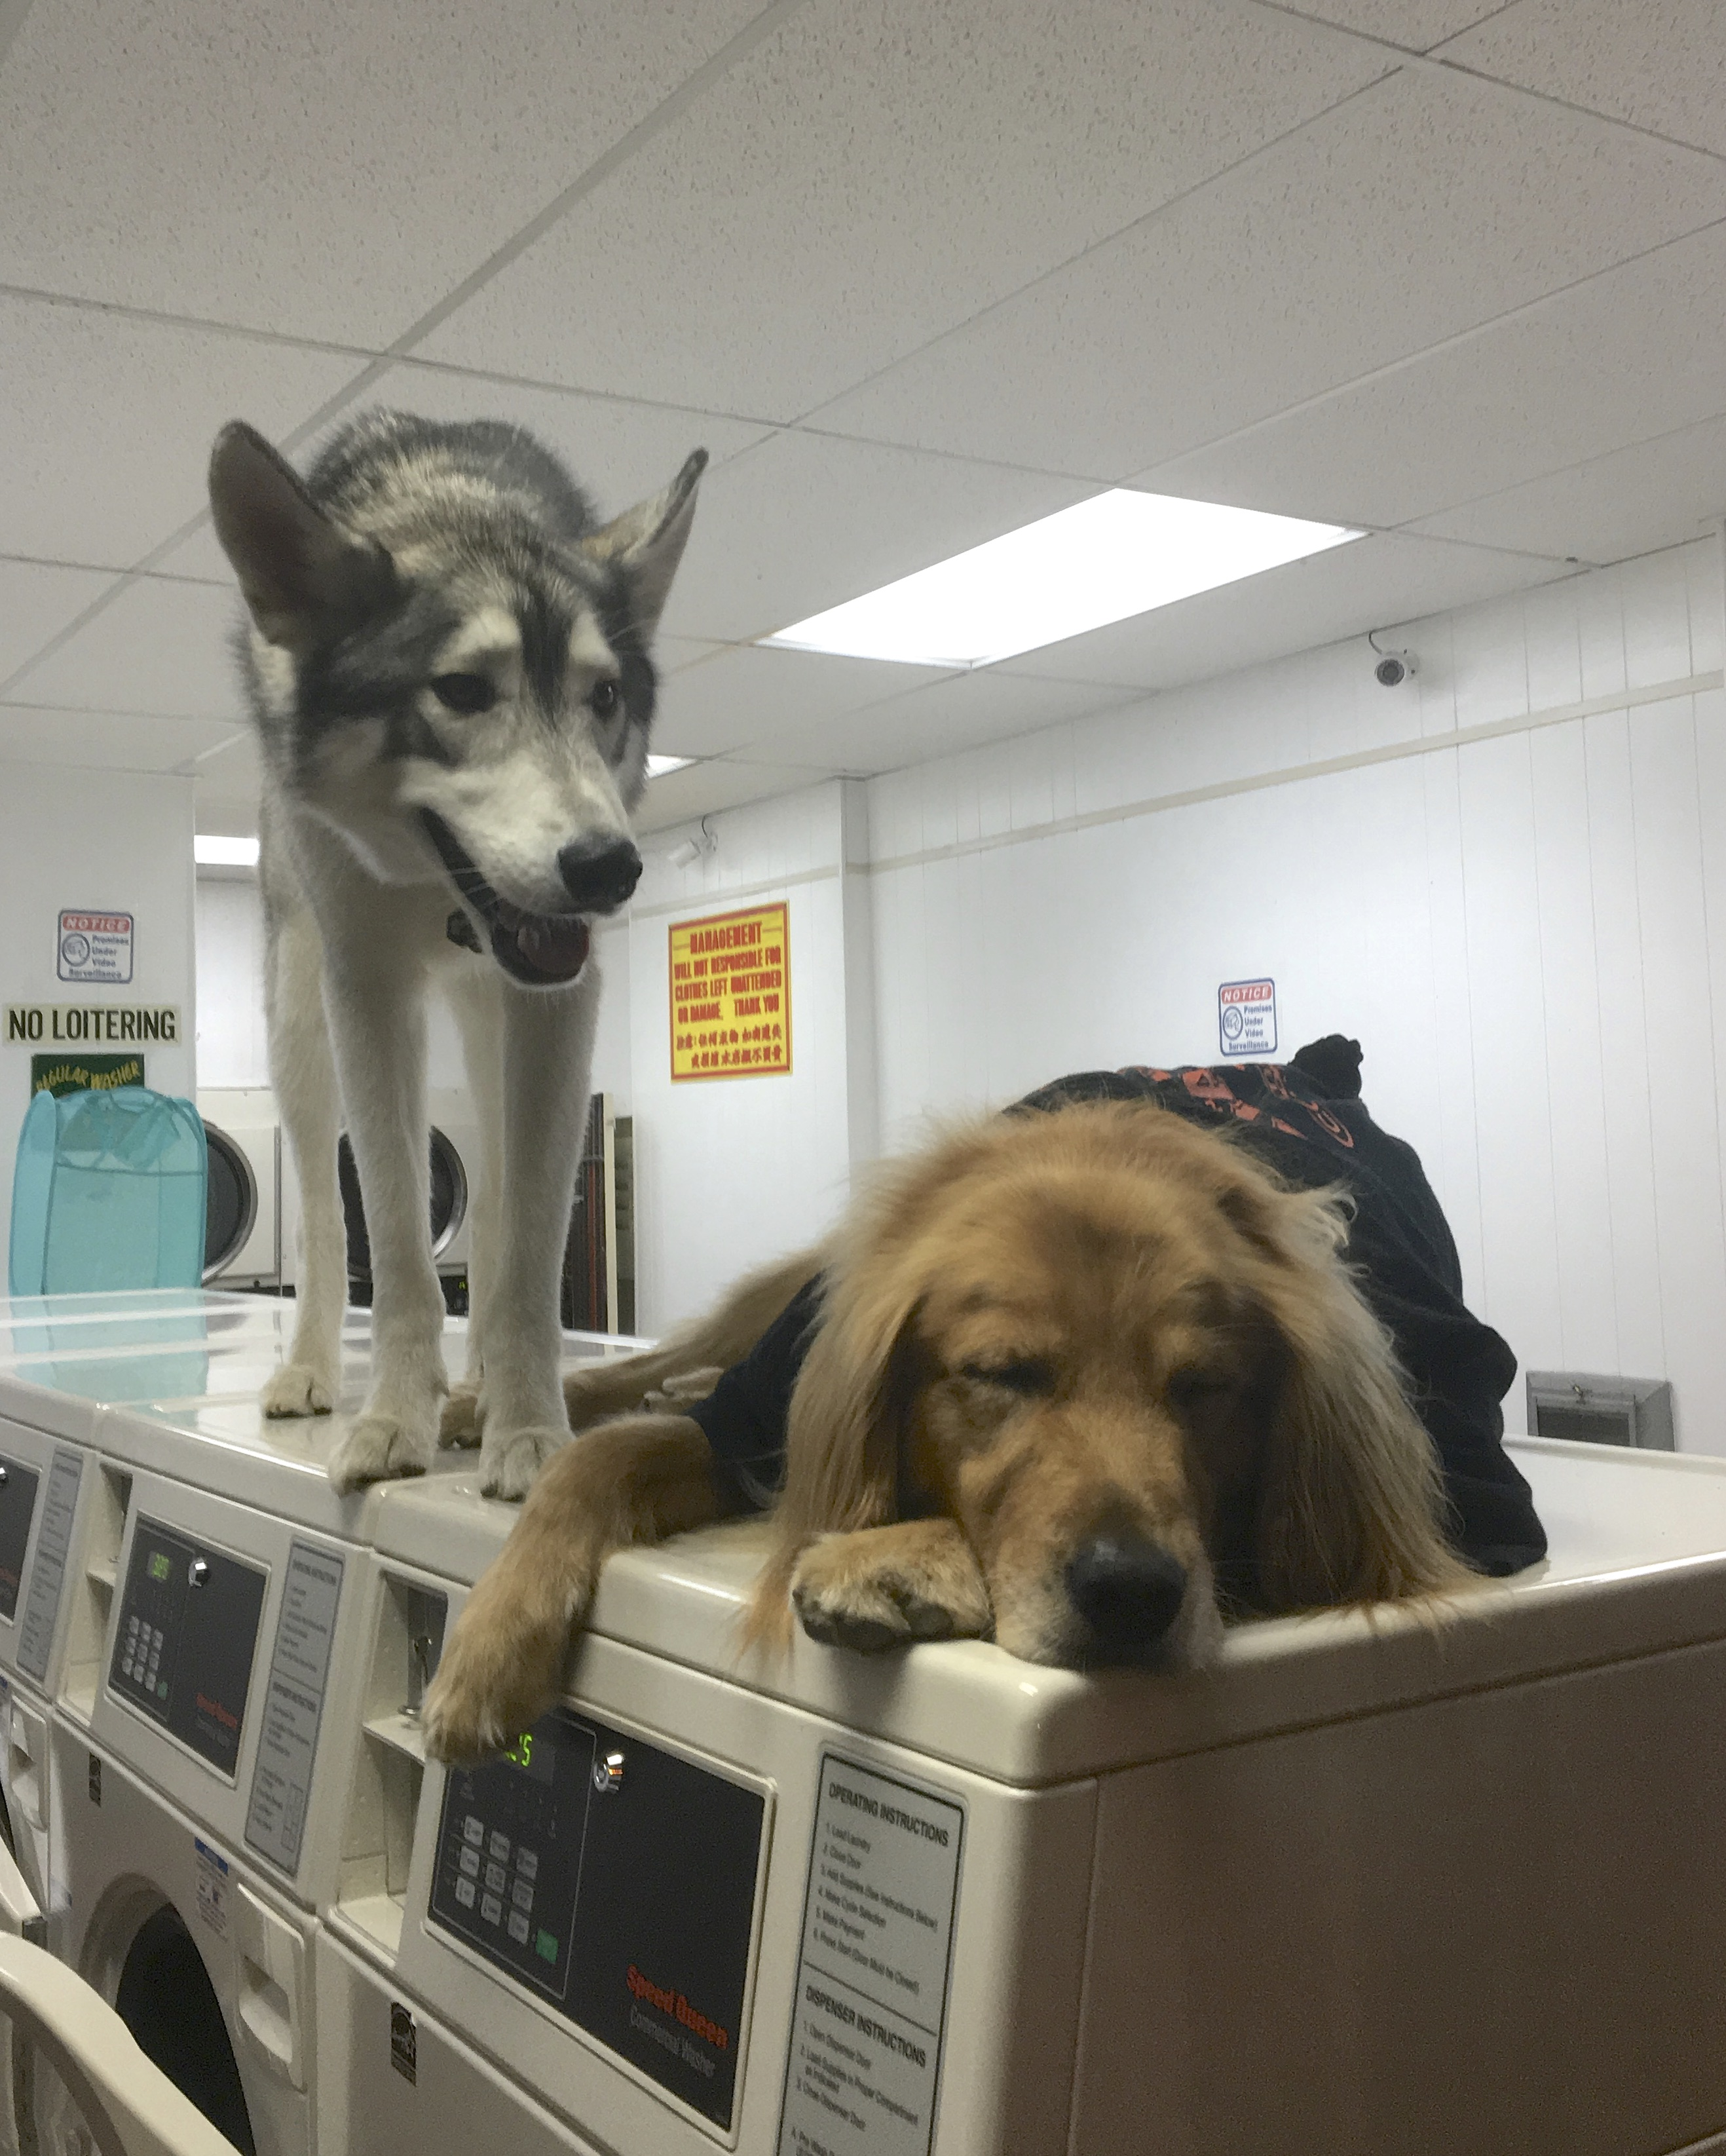 Golden Retriever And Siberian Husky On Commercial Washing Machines In A Laundromat